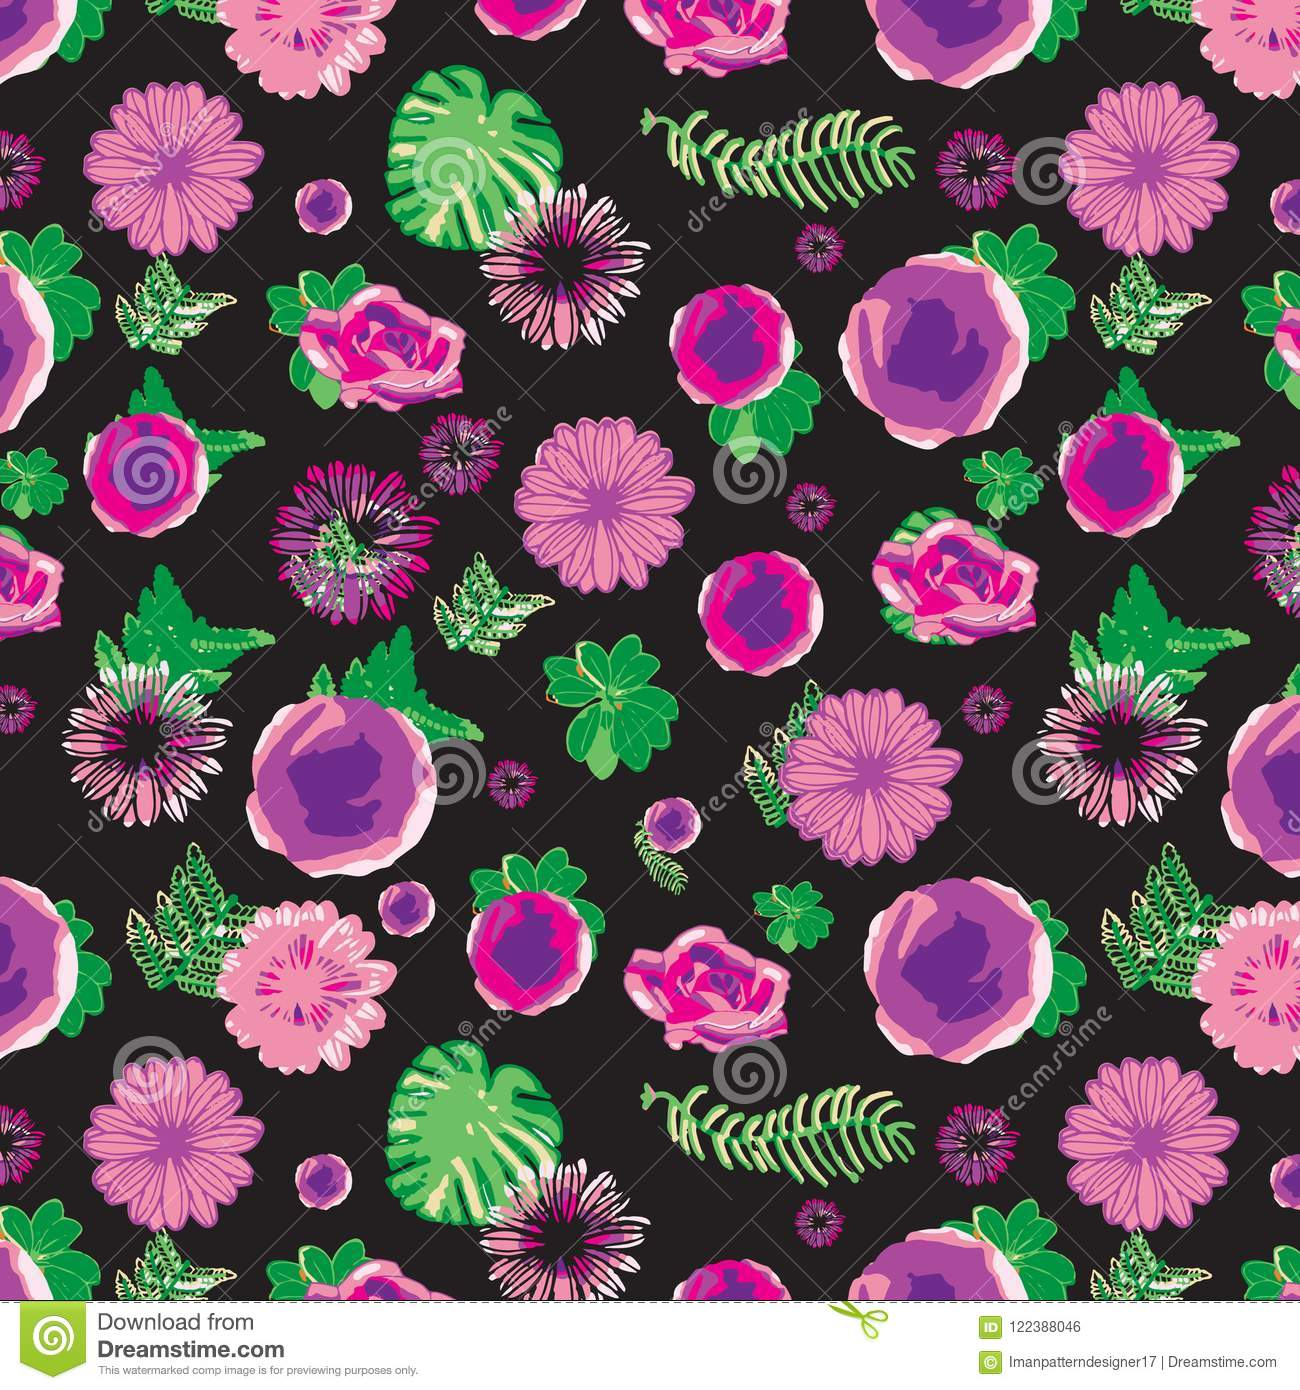 Pink And Purple Floral Pattern With Green Leaves Over Black Background